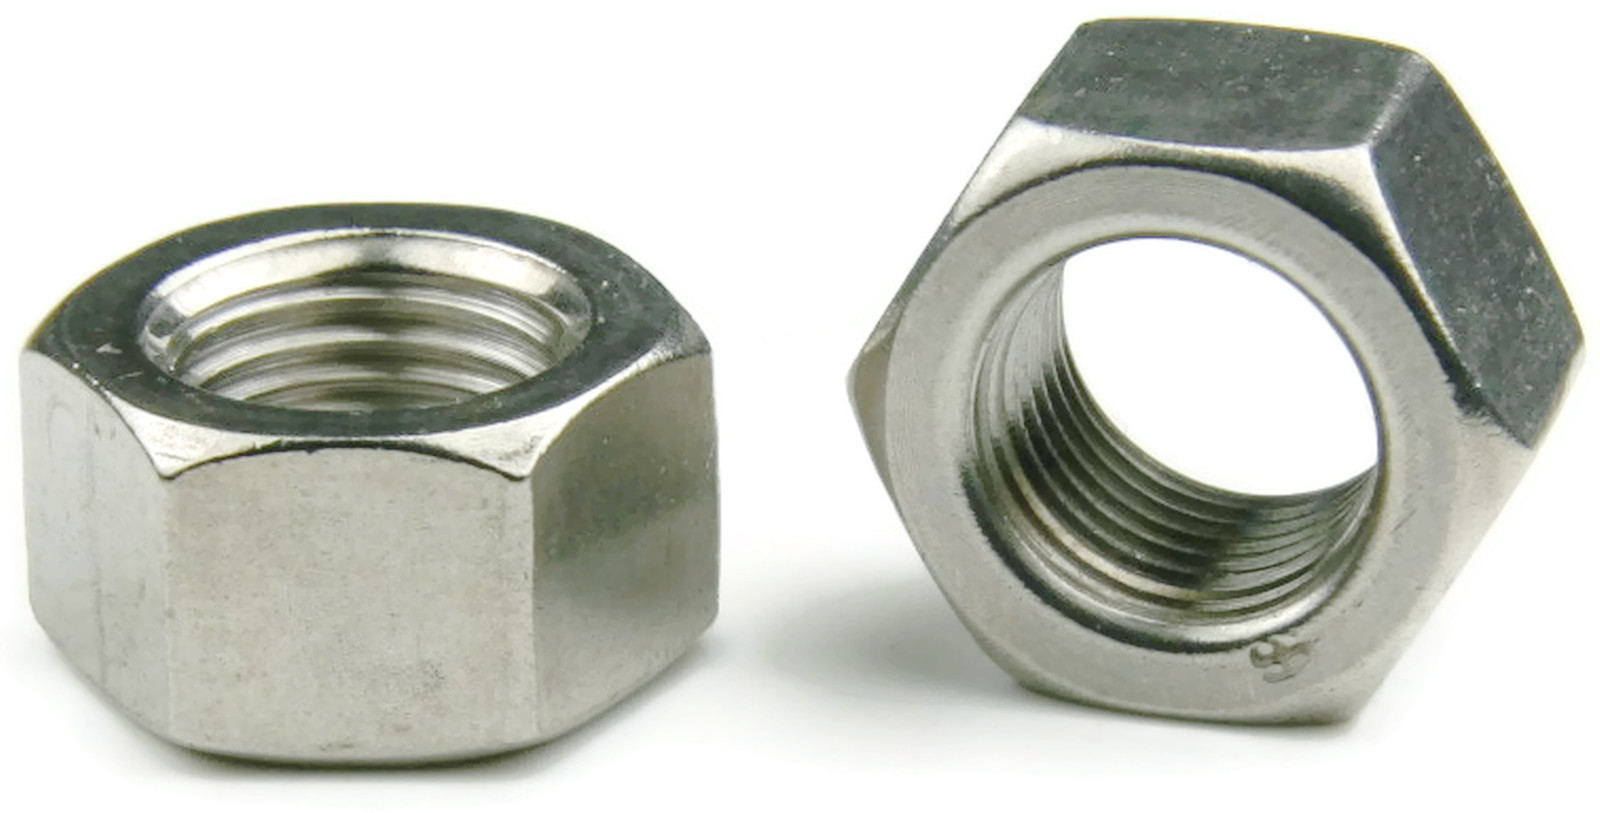 A stainless steel finished hex nut metric m qty